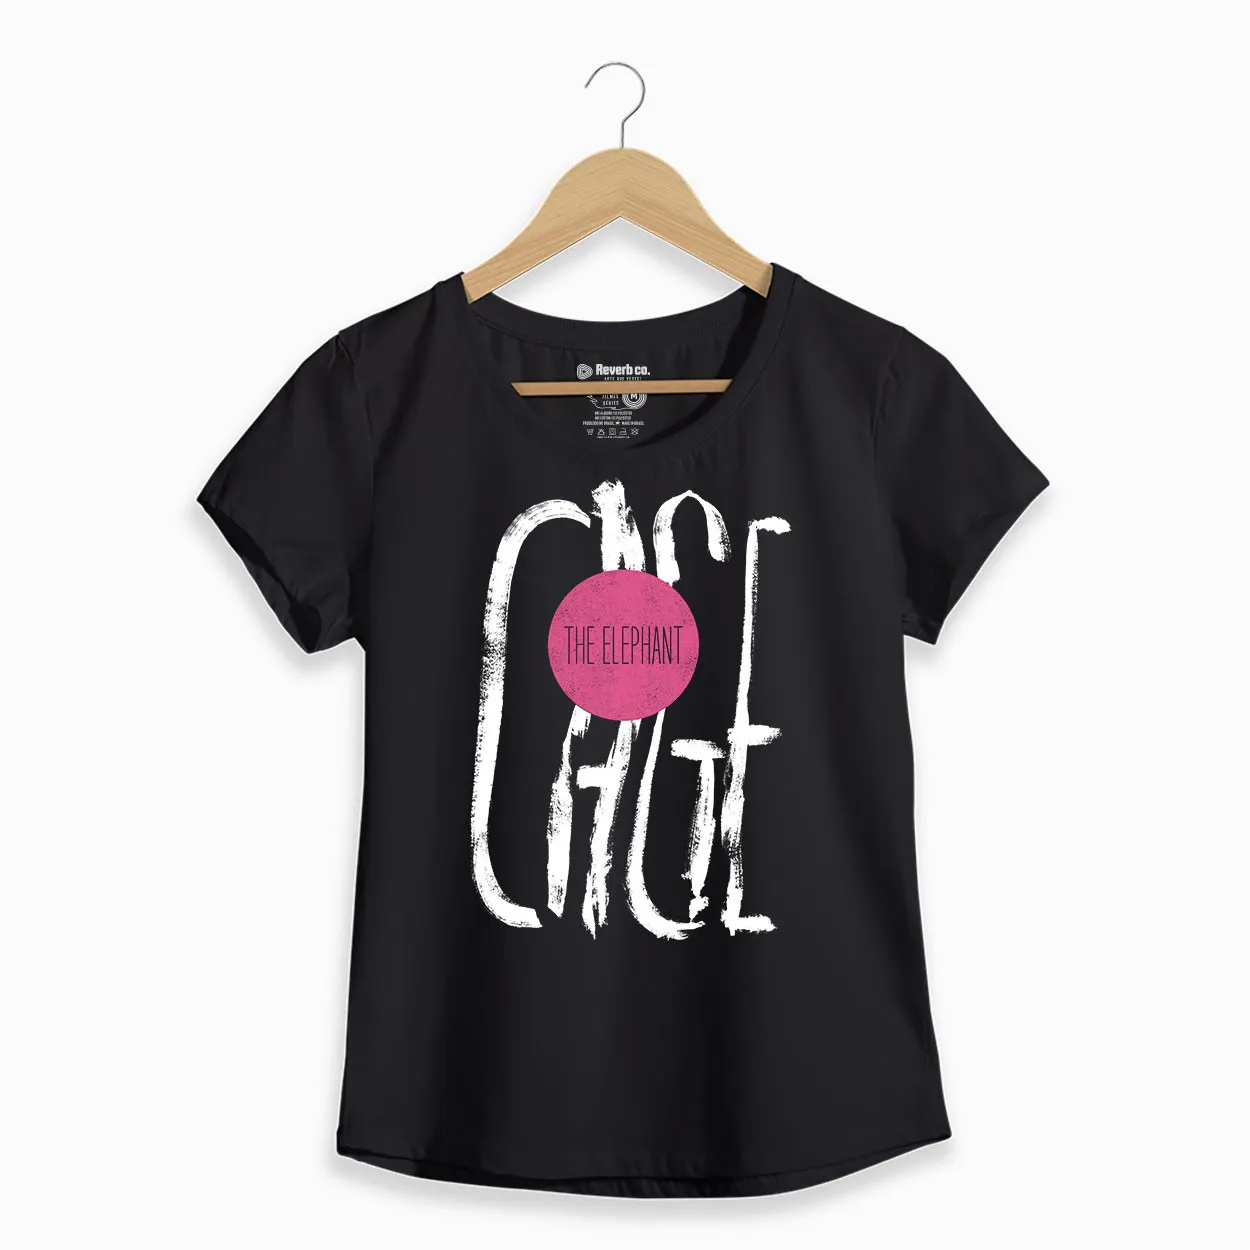 Camiseta  - Cage The Elephant - Feminino